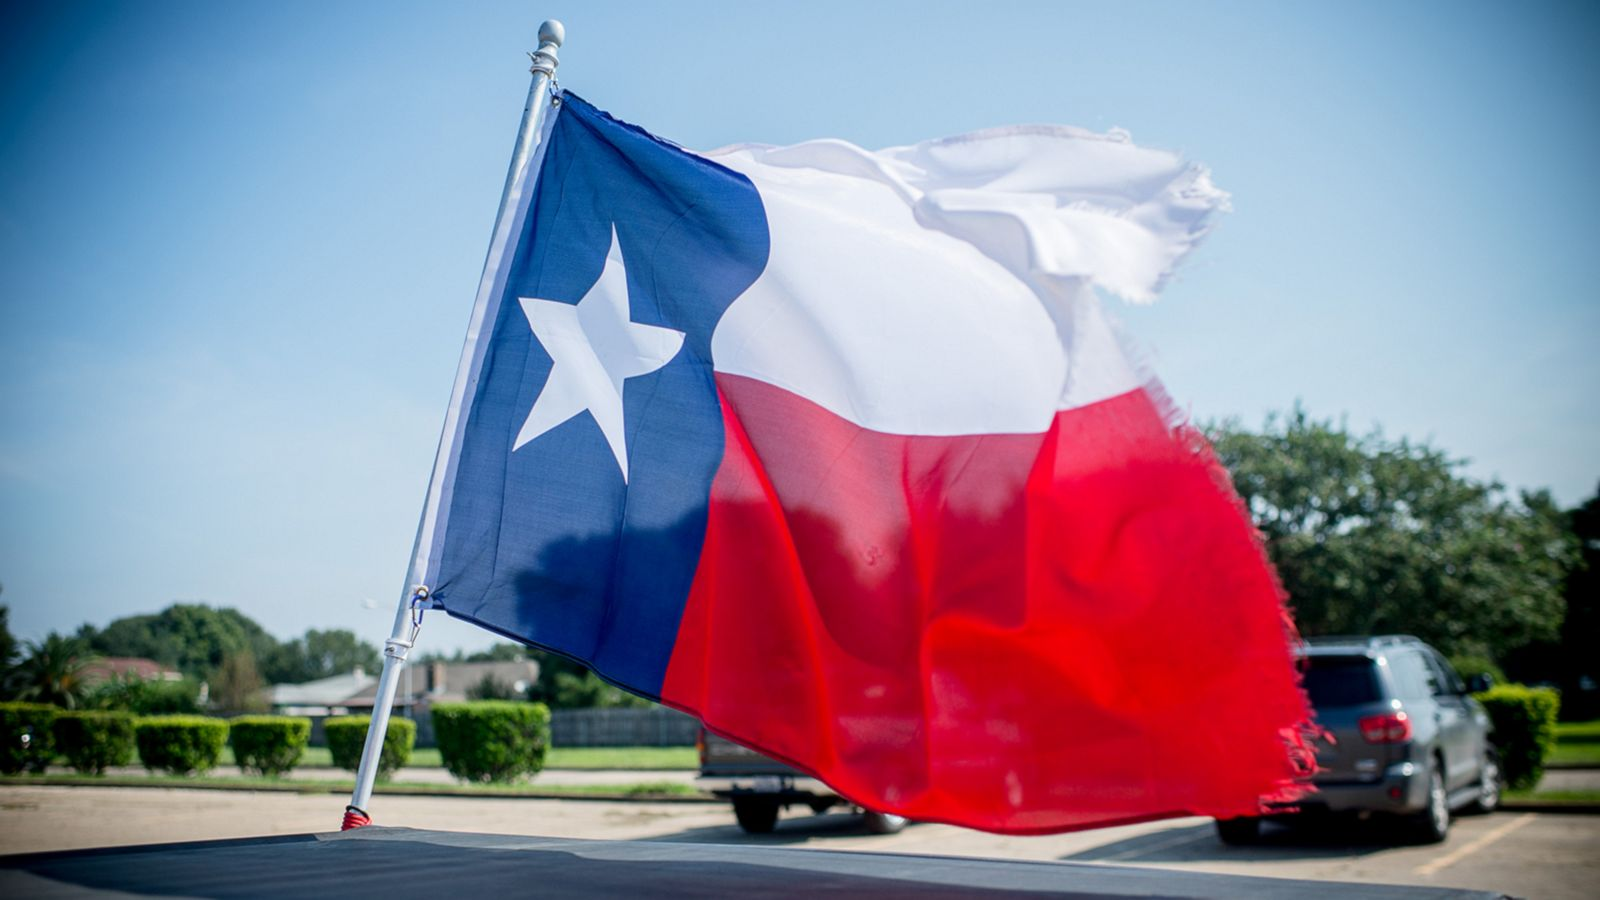 Confidence Interval: Texas could go blue in 2020 | FiveThirtyEight